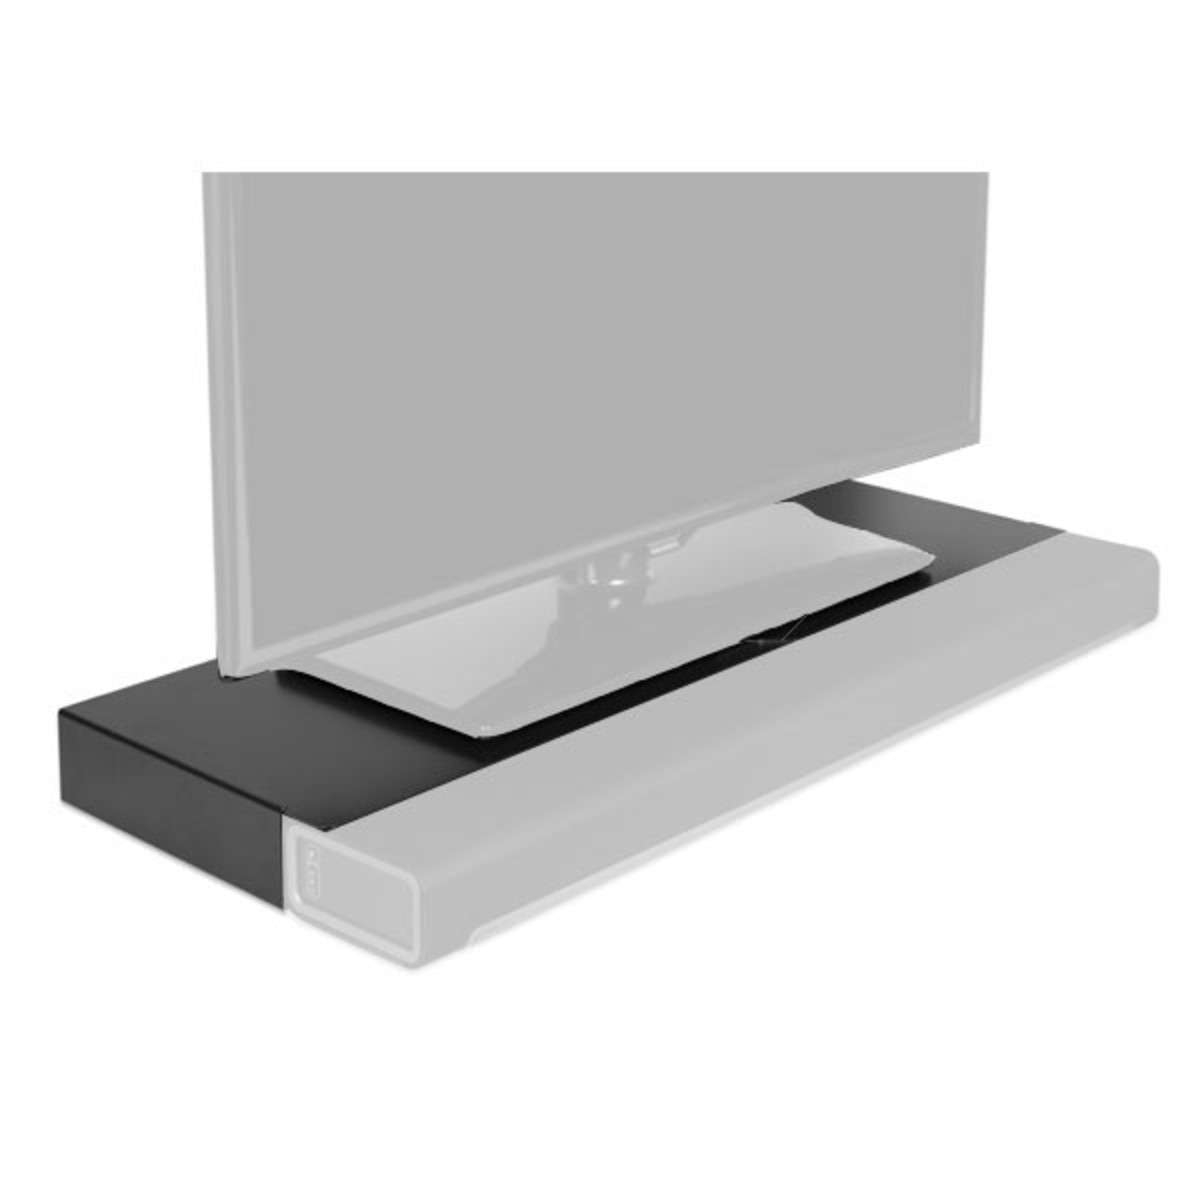 Flexson Tv Stand For Sonos Playbar, Black At Gear4music With Sonos Tv Stands (View 3 of 15)